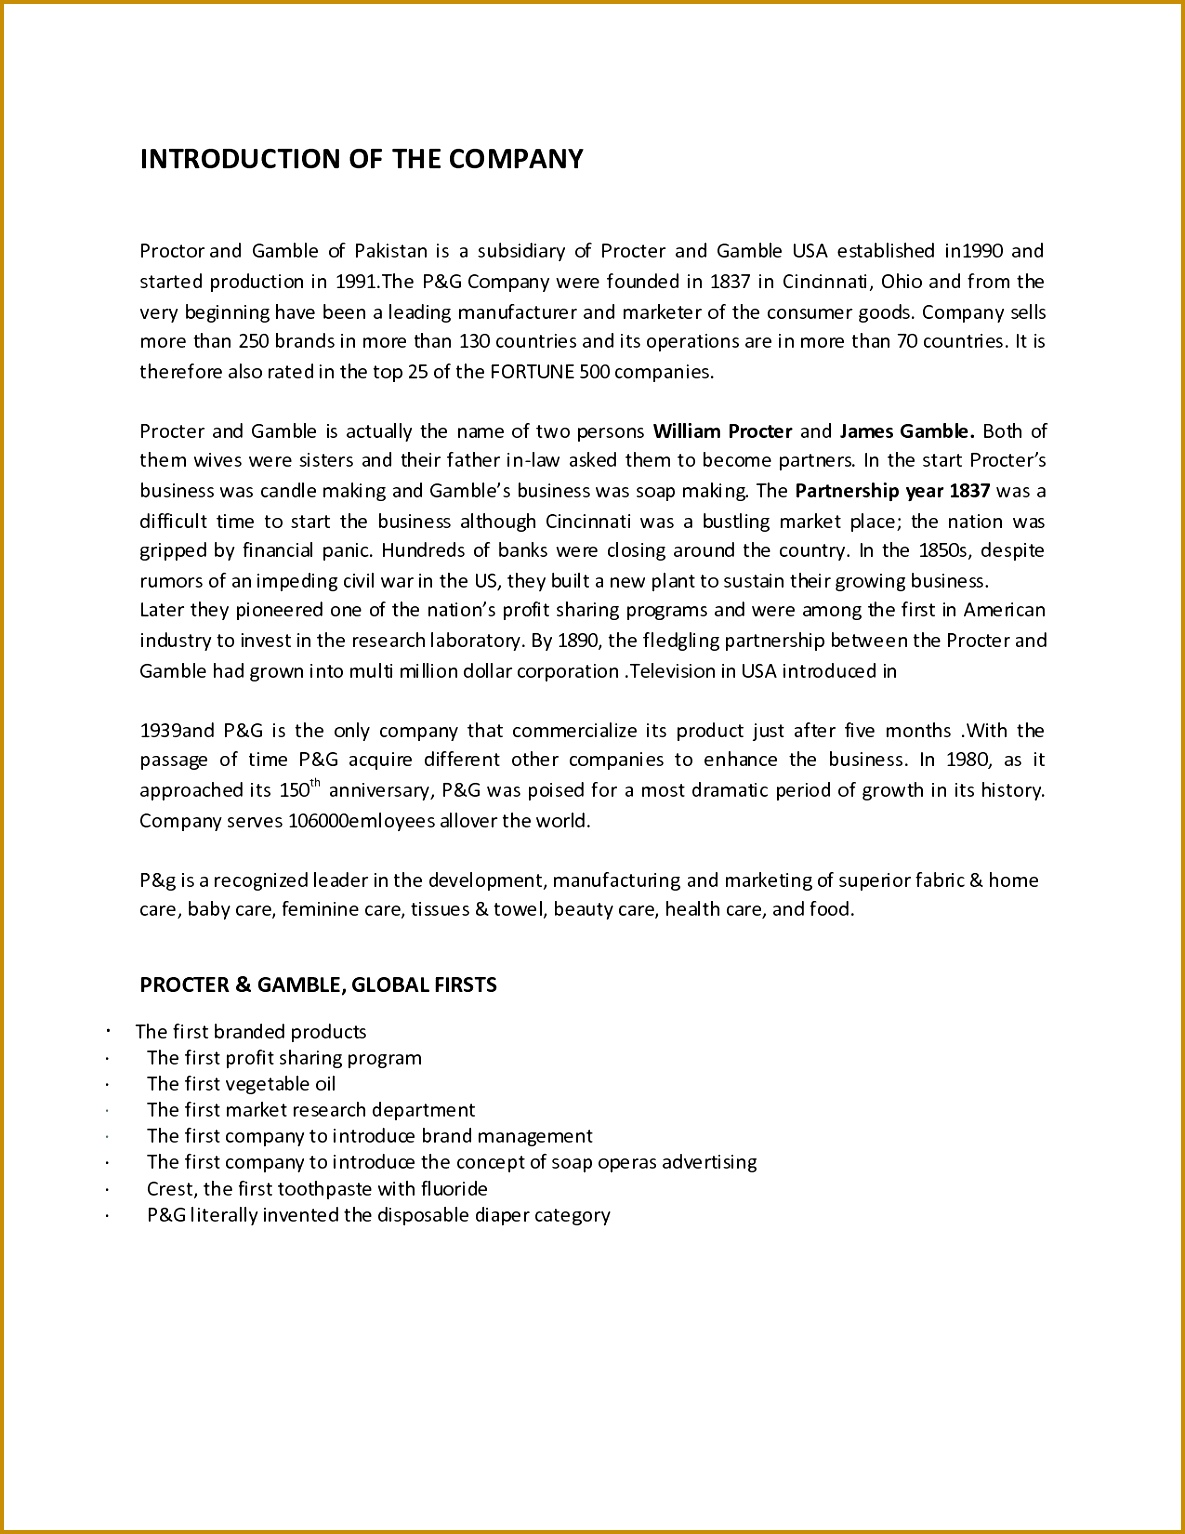 Cover Letter Example For Job Inspirationa New How Do You Address A Cover Letter Fresh Job Letter 0d Archives 15341185